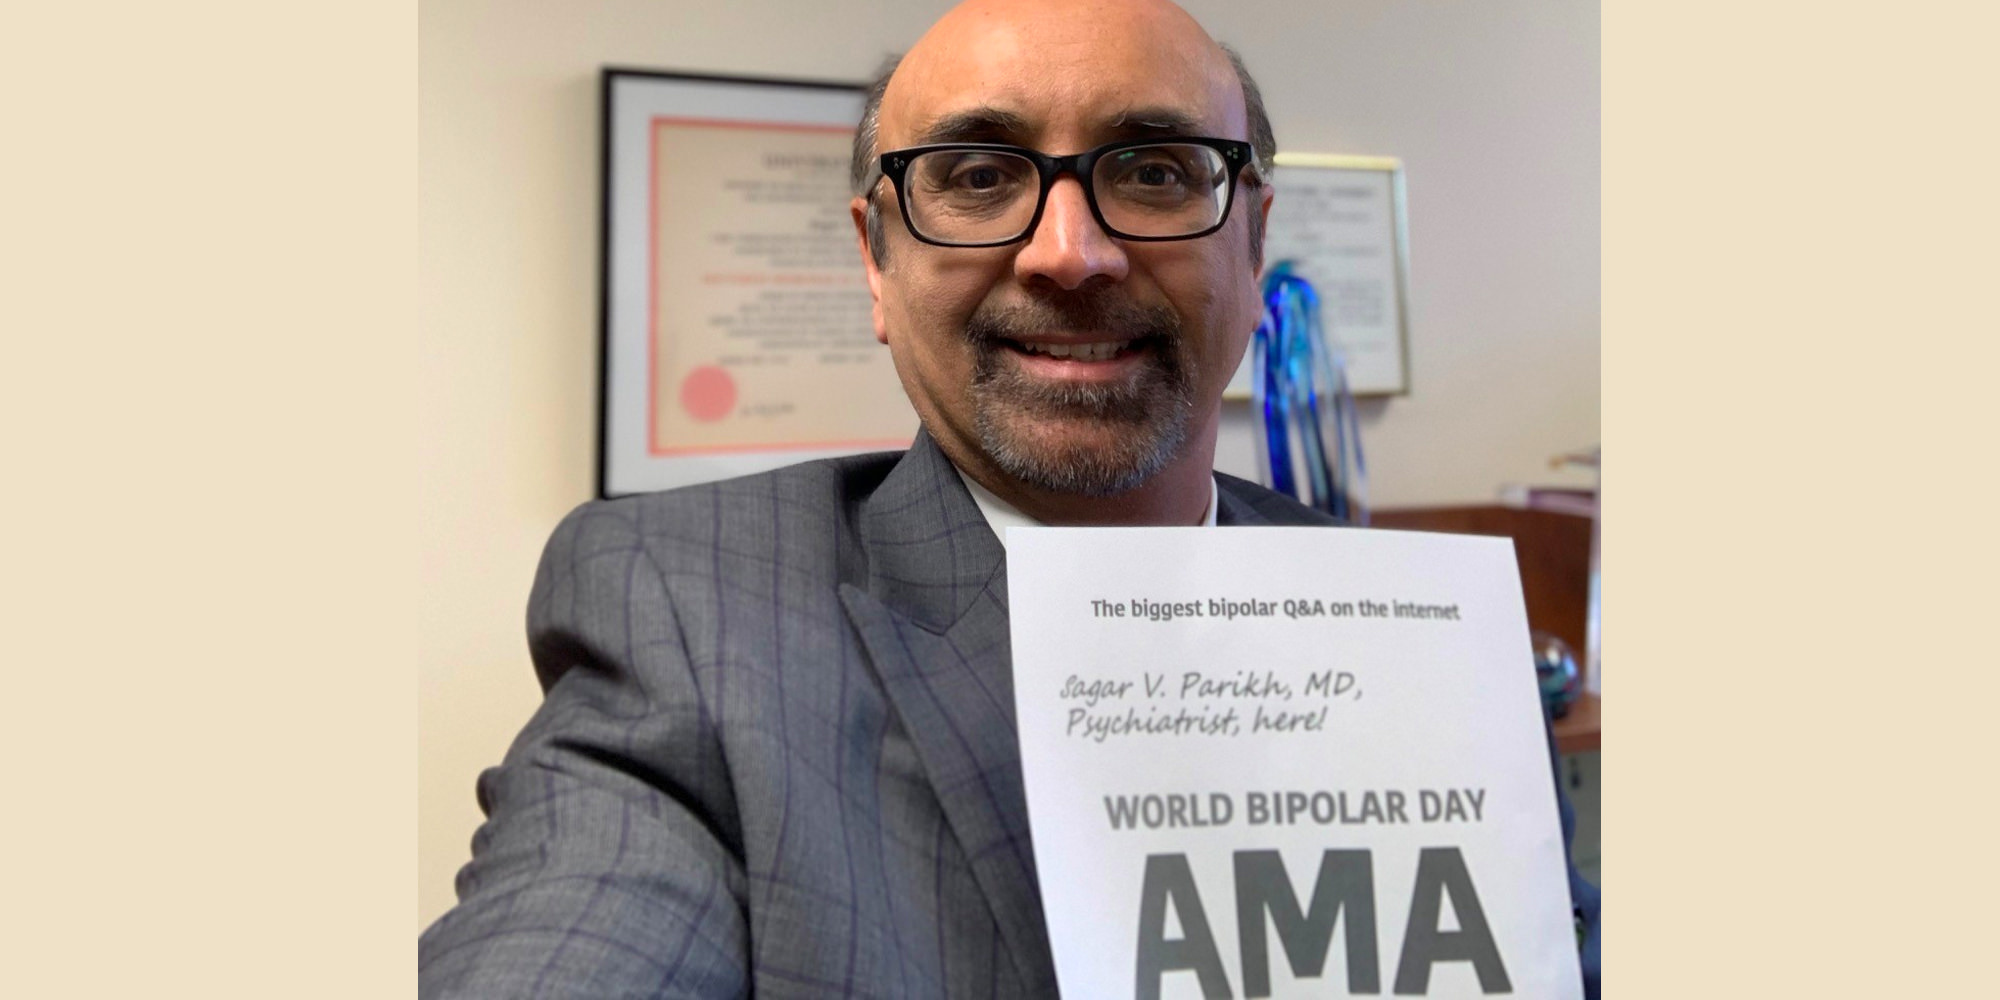 Sagar is in his office holding the AMA proof sign with his name written on it. He is Southeast Asian and is wearing a grey suit with a grid pattern and black, rectangular, thick-rimmed glasses.